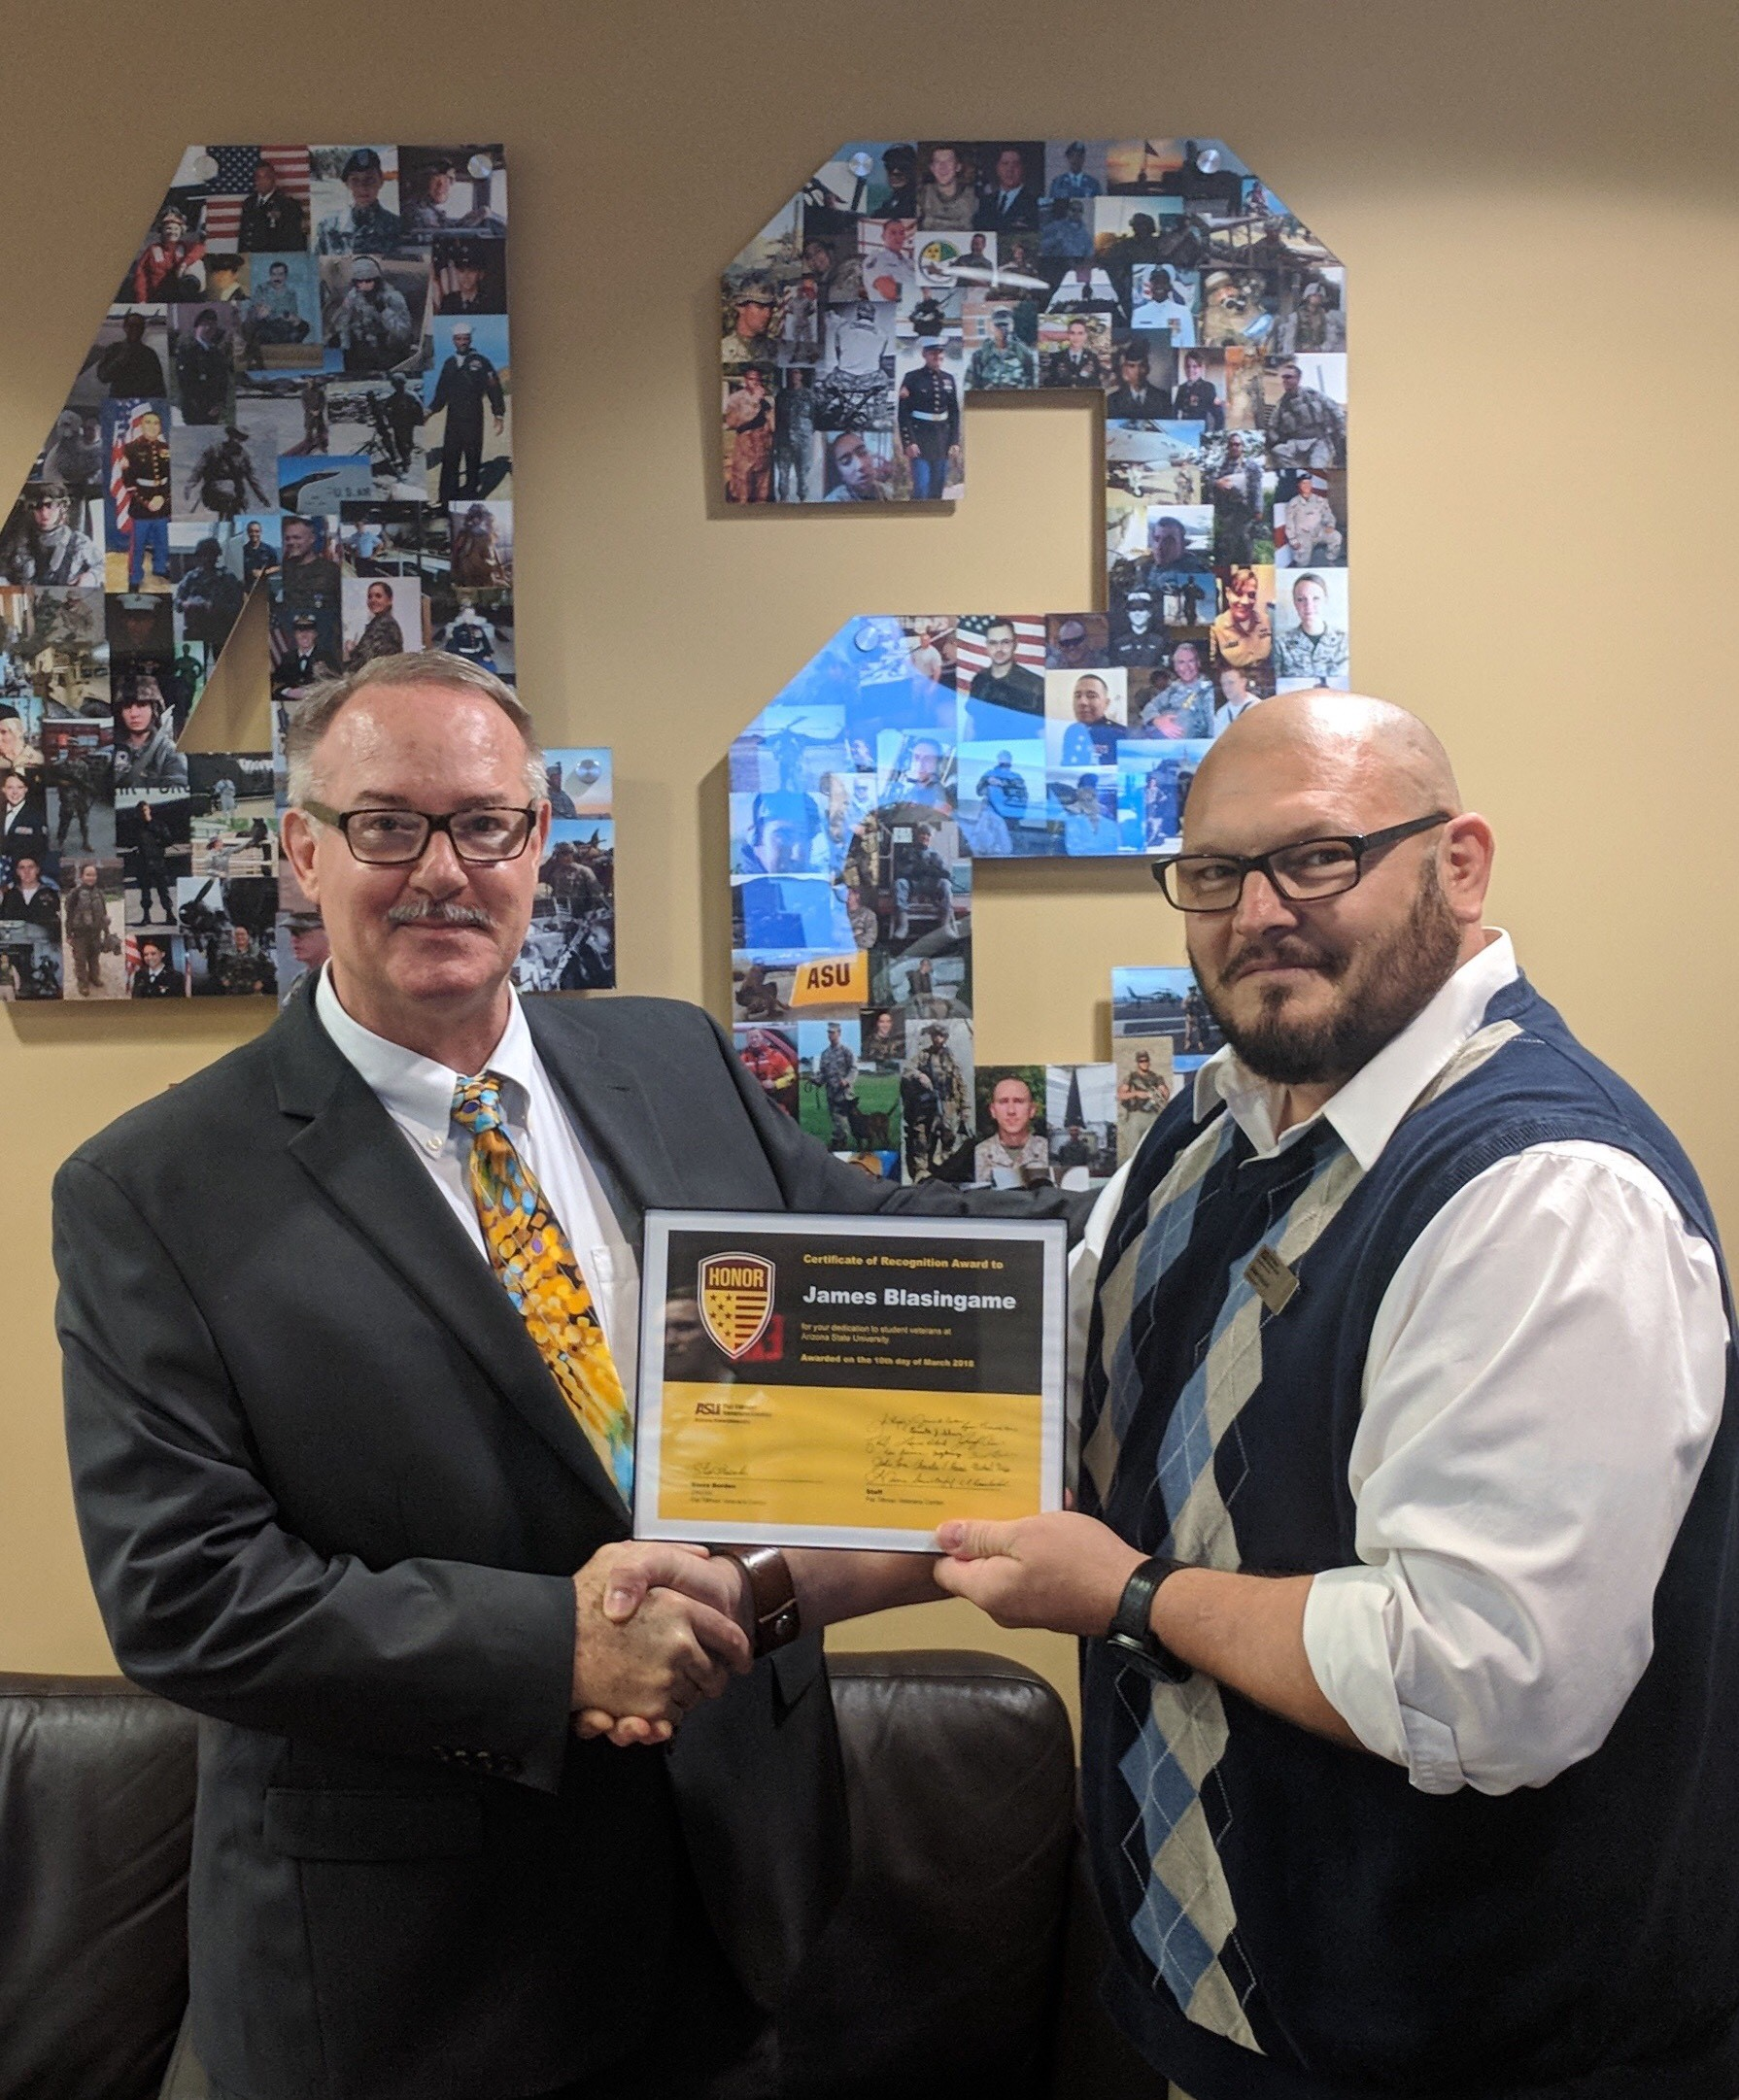 Shawn Banzhaf, a military advocate at the ASU West campus, presents ASU professor James Blasingame with a Tillman Center Honor Roll Award.